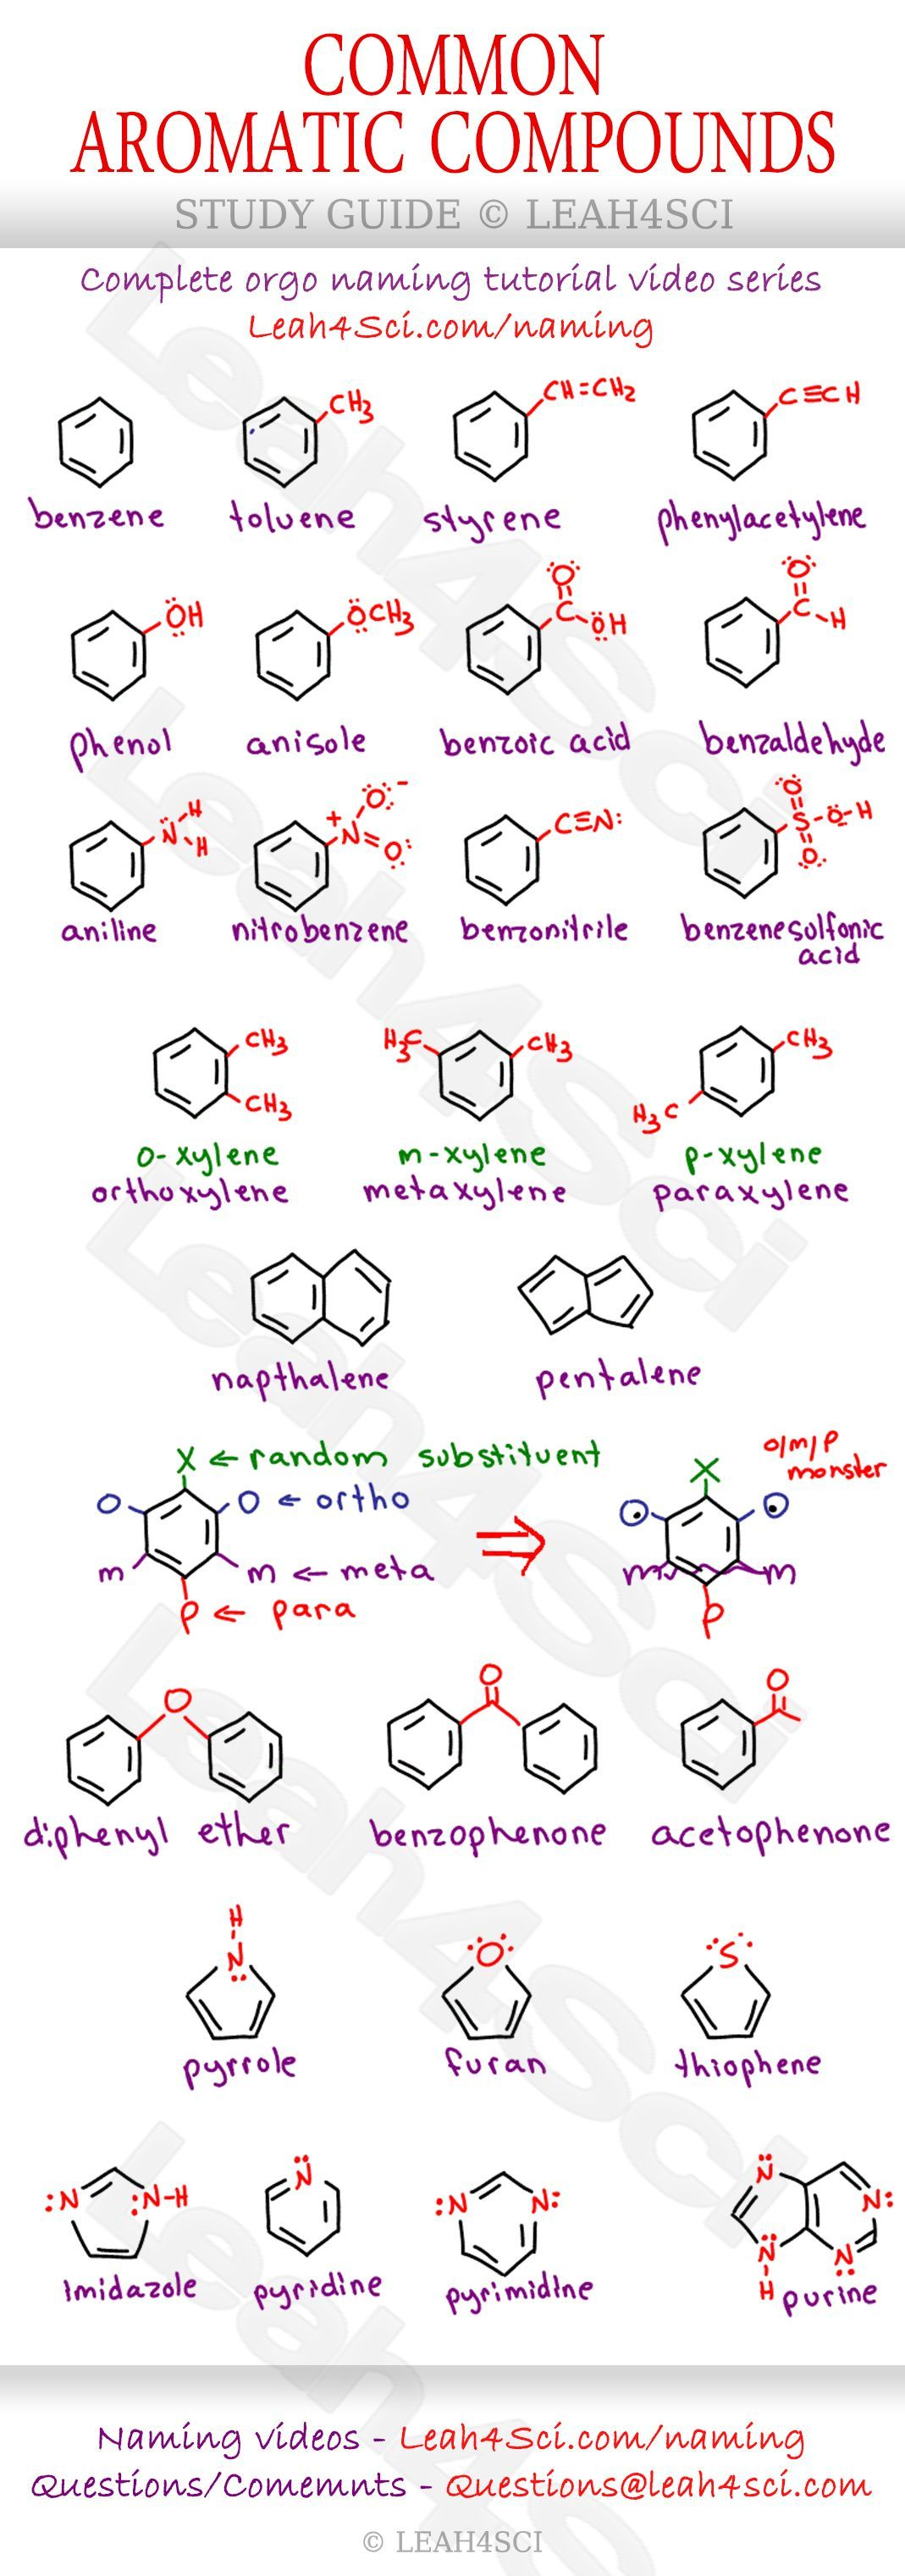 Naming Common Aromatic Compounds Cheat Sheet Study Guide By Leah4sci Find More At Leah4sci